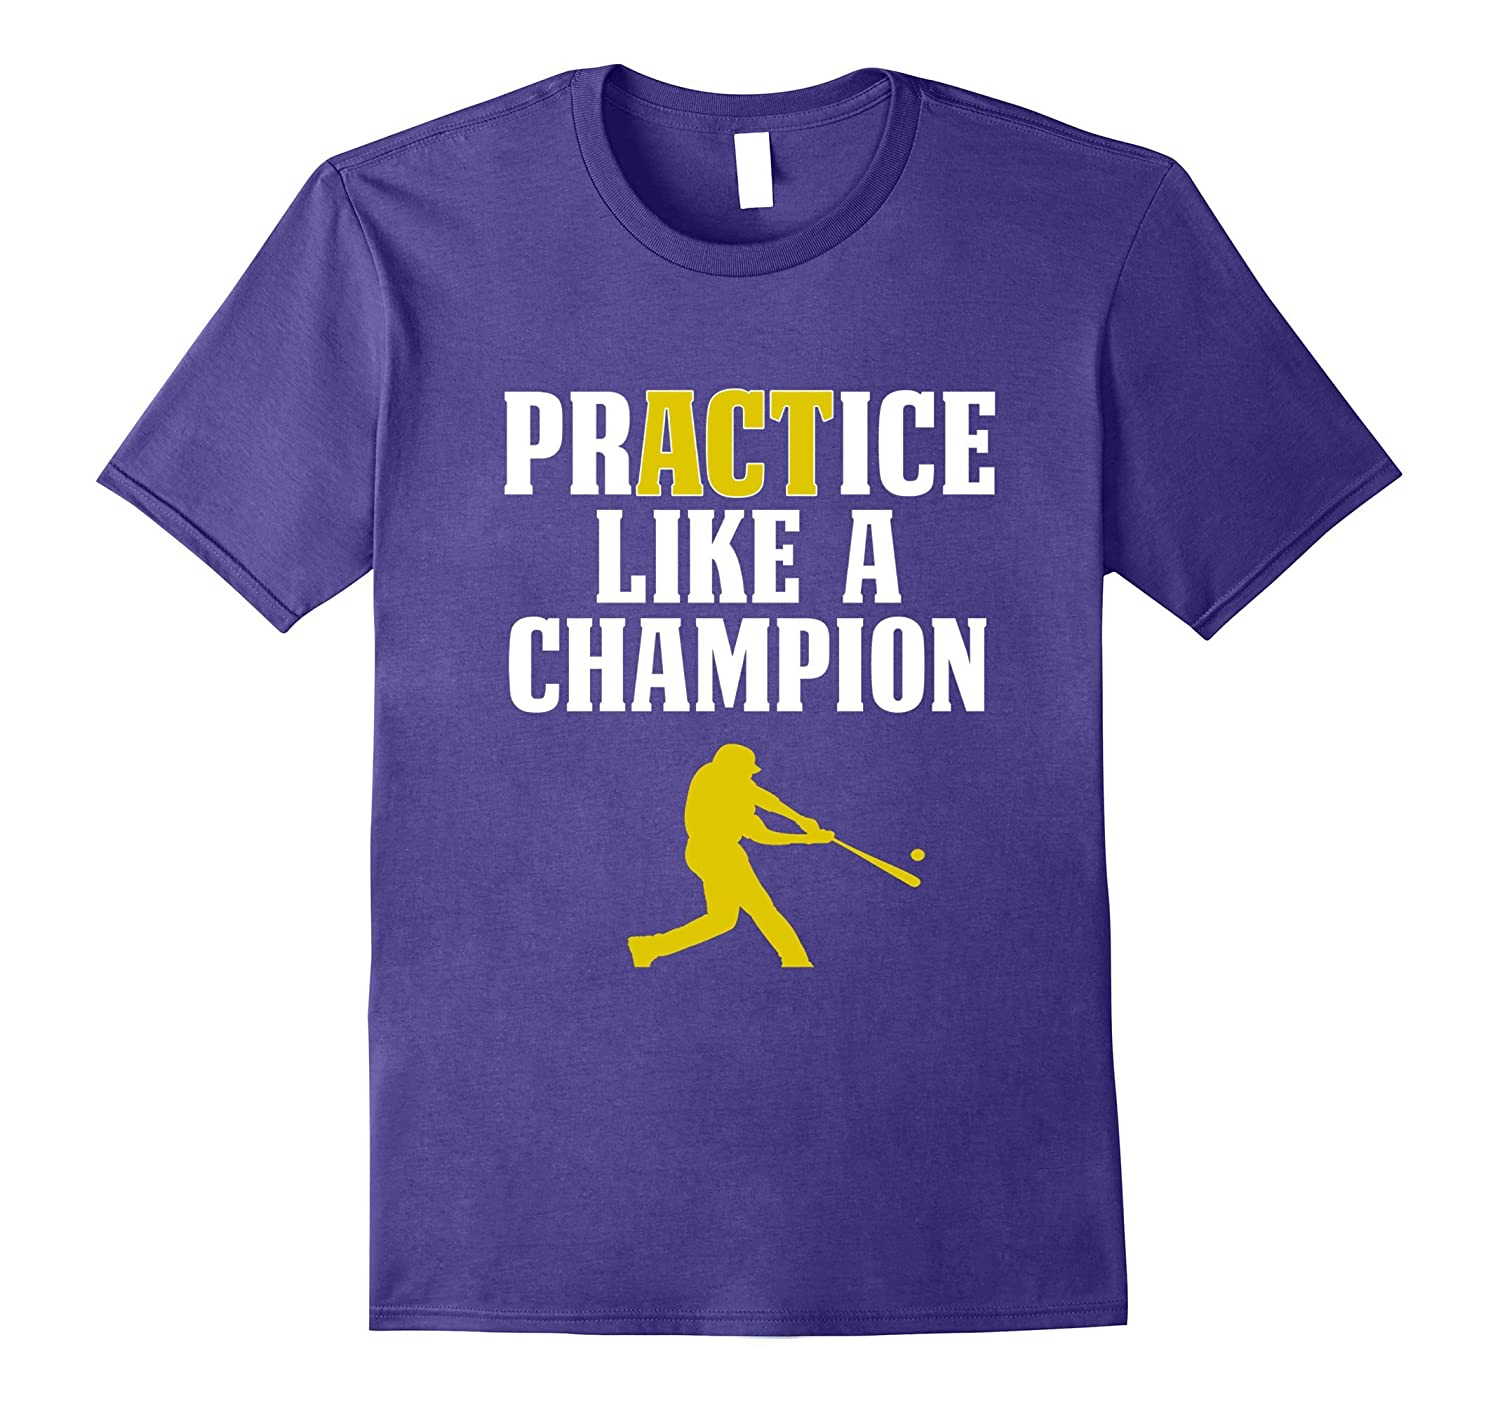 997e21c29450 Cool Baseball Batter Shirt PrACTice Like A Champion Gold- TPT - Best  Selling T-Shirts